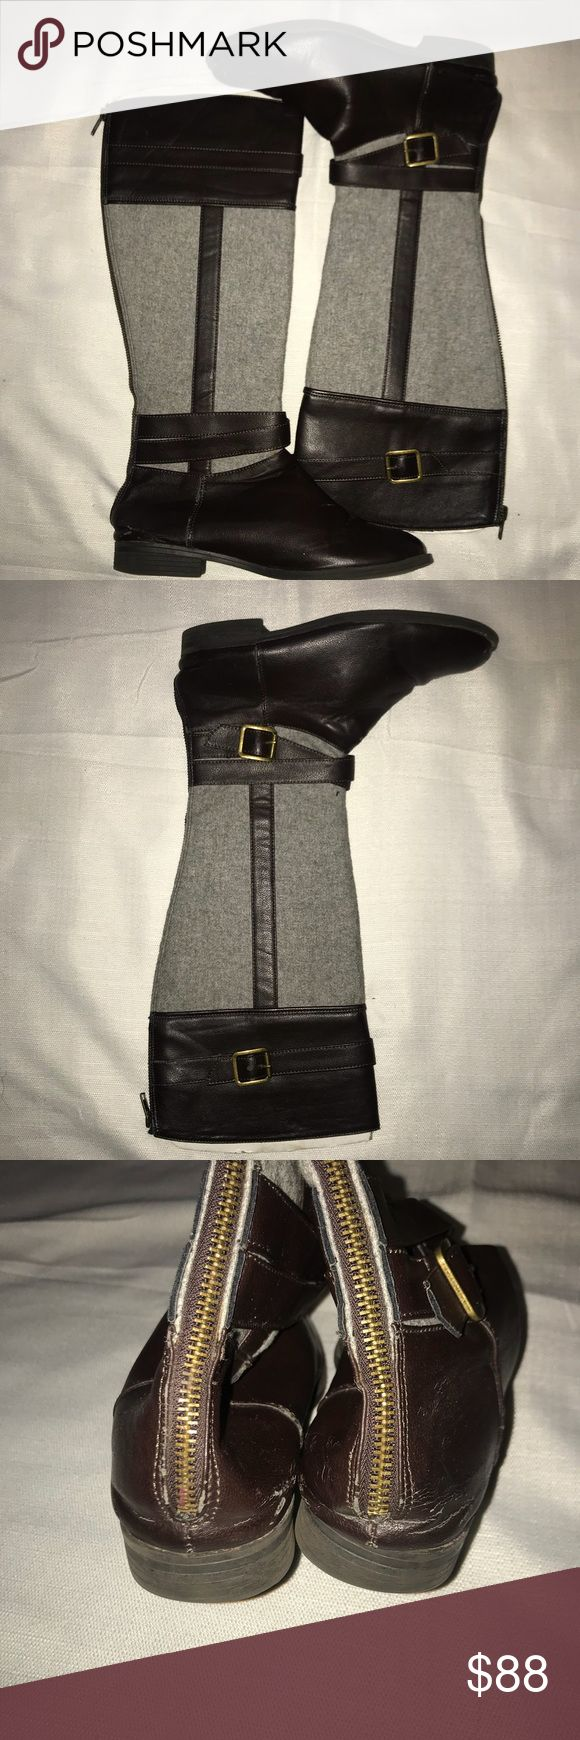 Brown & Wheat Knee High Boots A cute & simple pair of boots. Perfect for everyday wear. In good wearable condition. Has flaws as noted in the pictures. Price reflects these flaws. LC Lauren Conrad Shoes Winter & Rain Boots